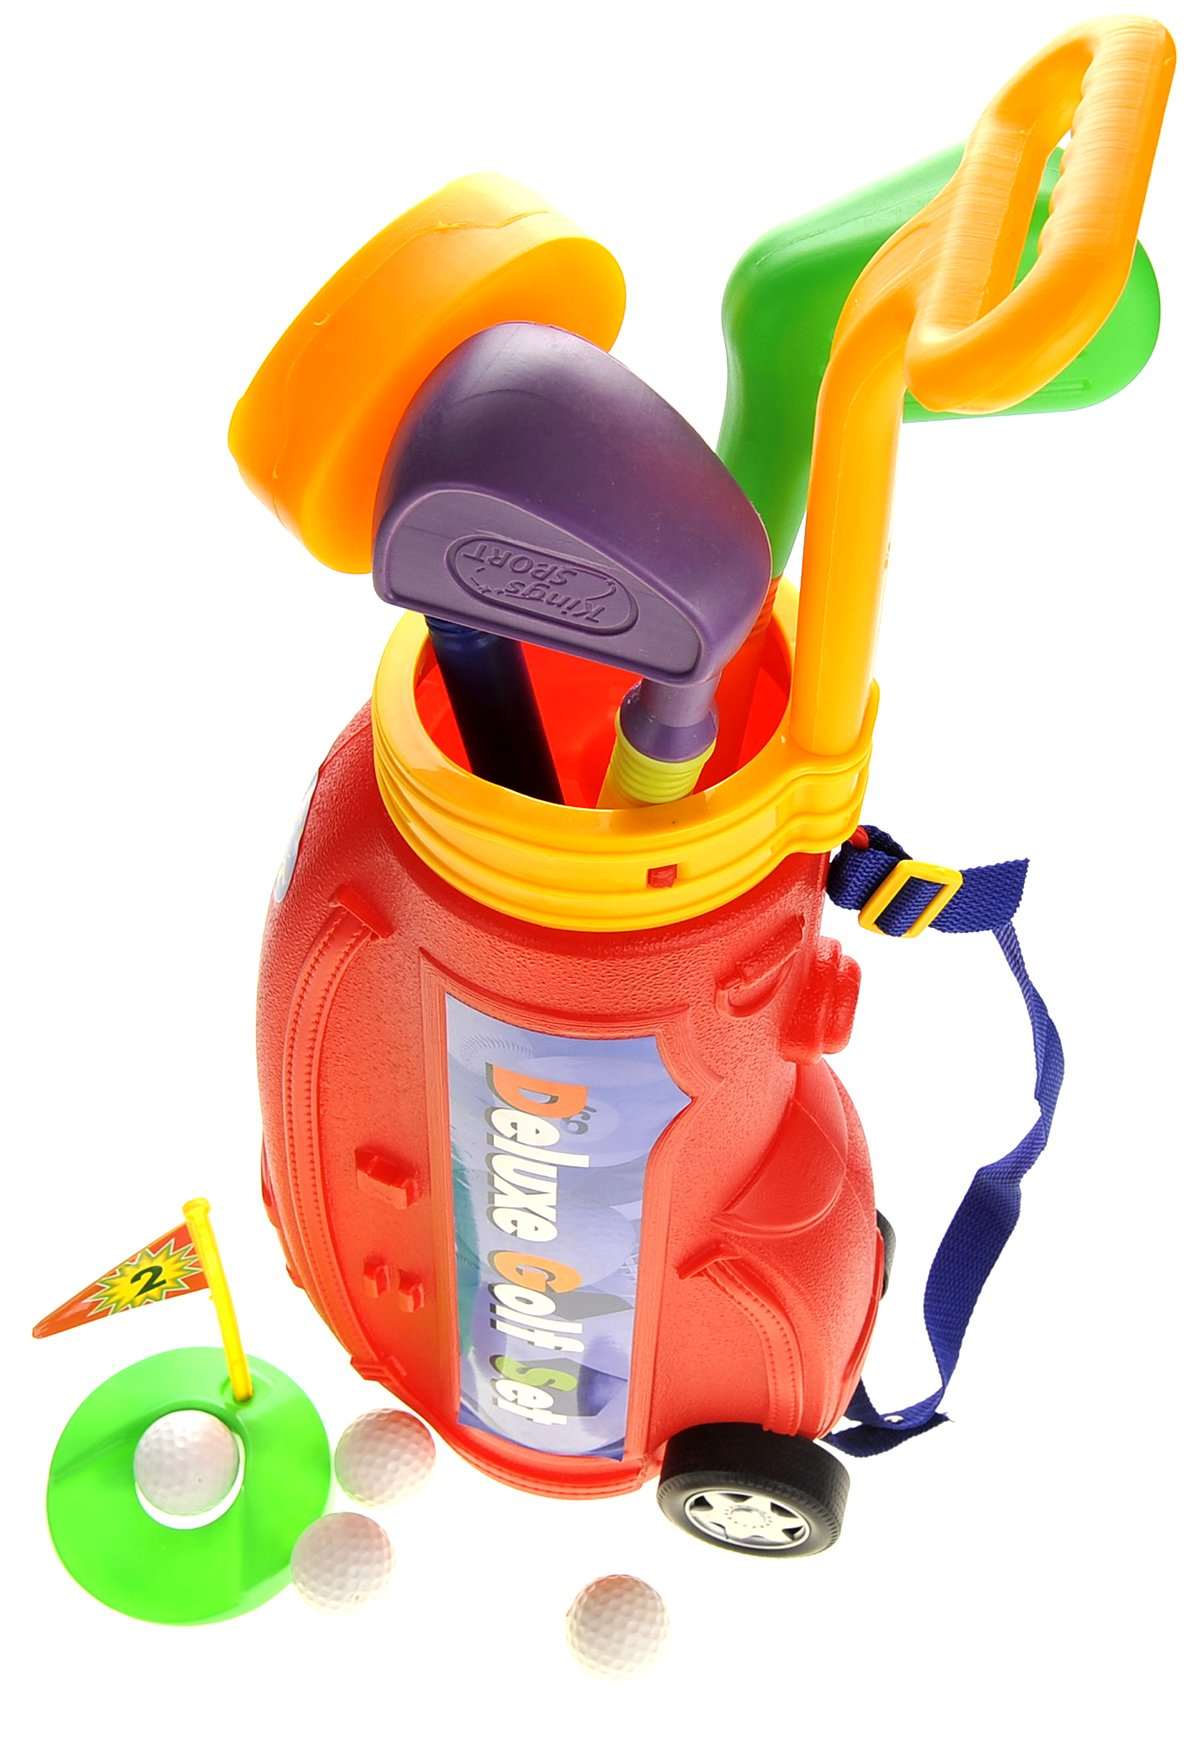 PowerTRC Deluxe Golf Play-Set for Kids w/ Easy Storage by PowerTRC (Image #2)